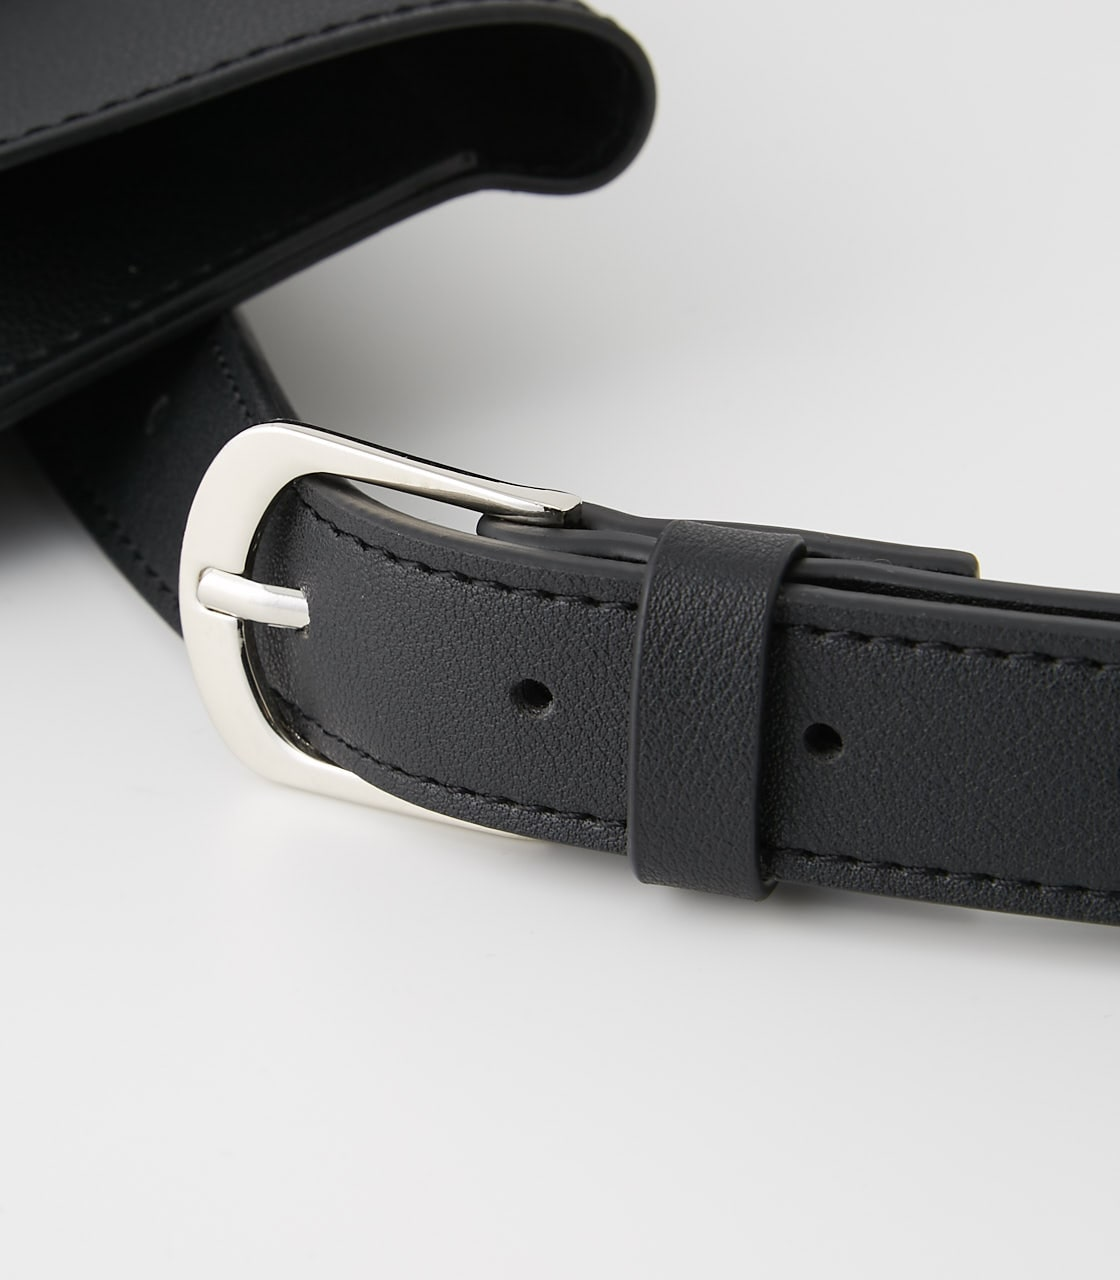 【AZUL BY MOUSSY】SQUARE BUCKLE PORCH SET BELT 詳細画像 BLK 5